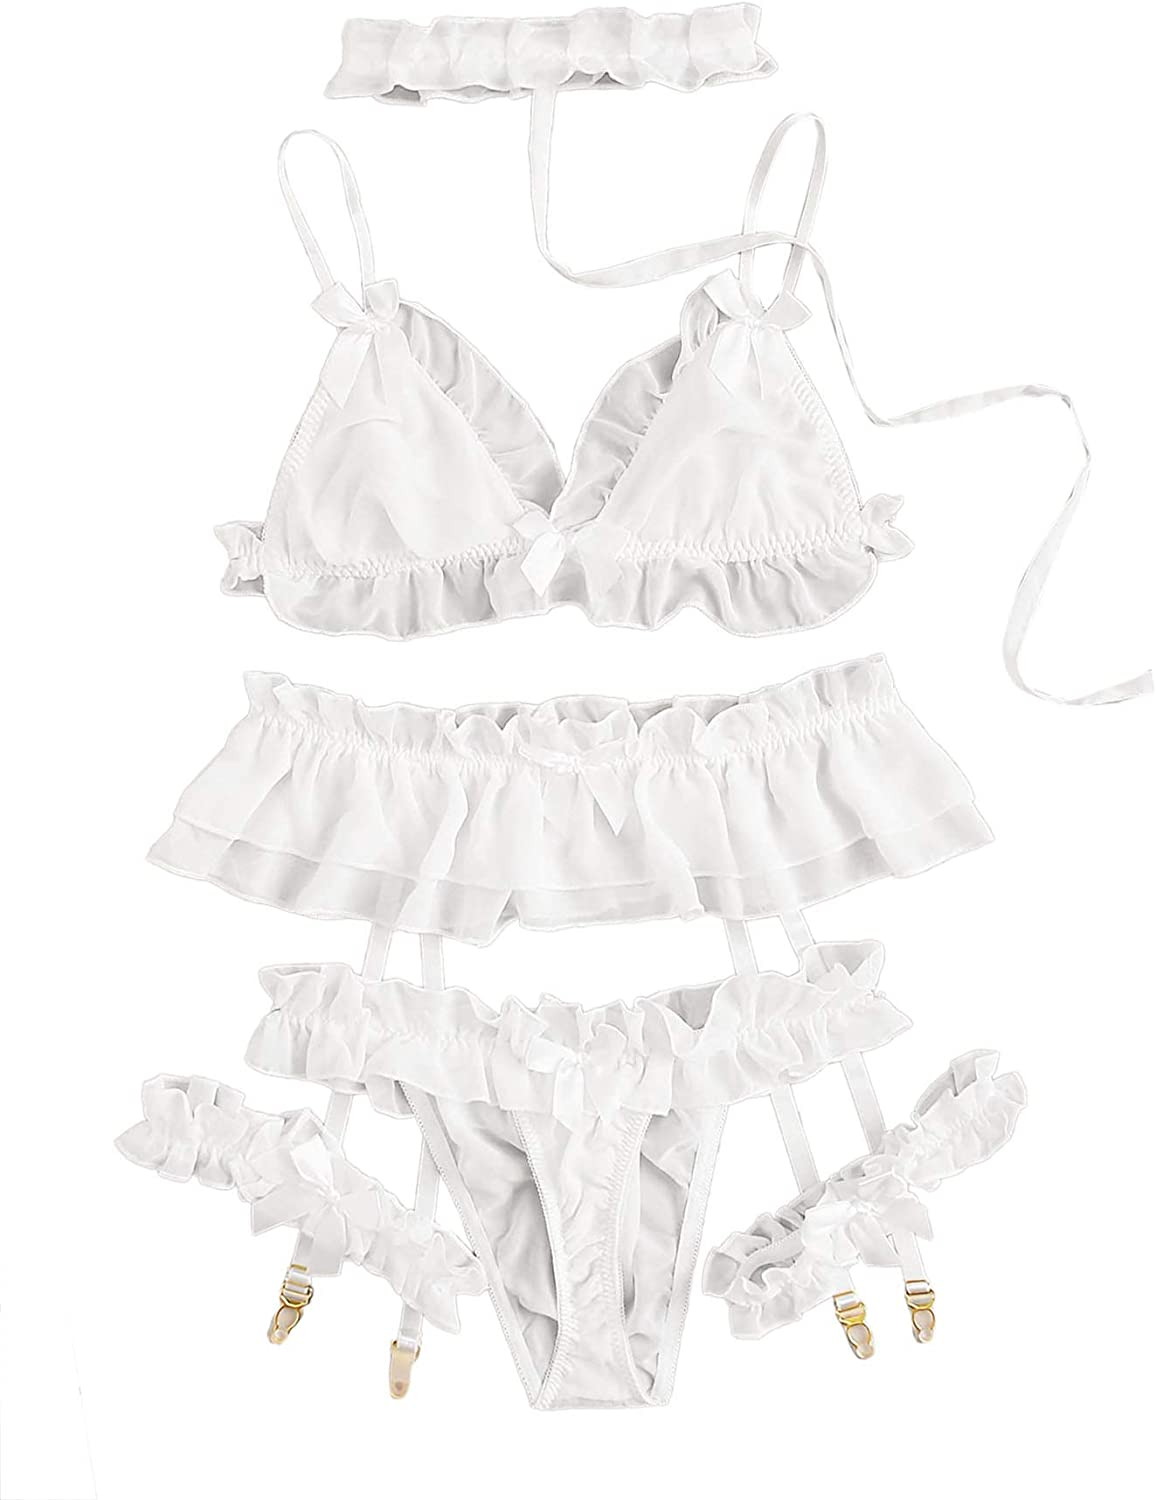 SheIn Special price Women's Ruffle Bralettes and Lingerie wi In a popularity Panty Chiffon Set